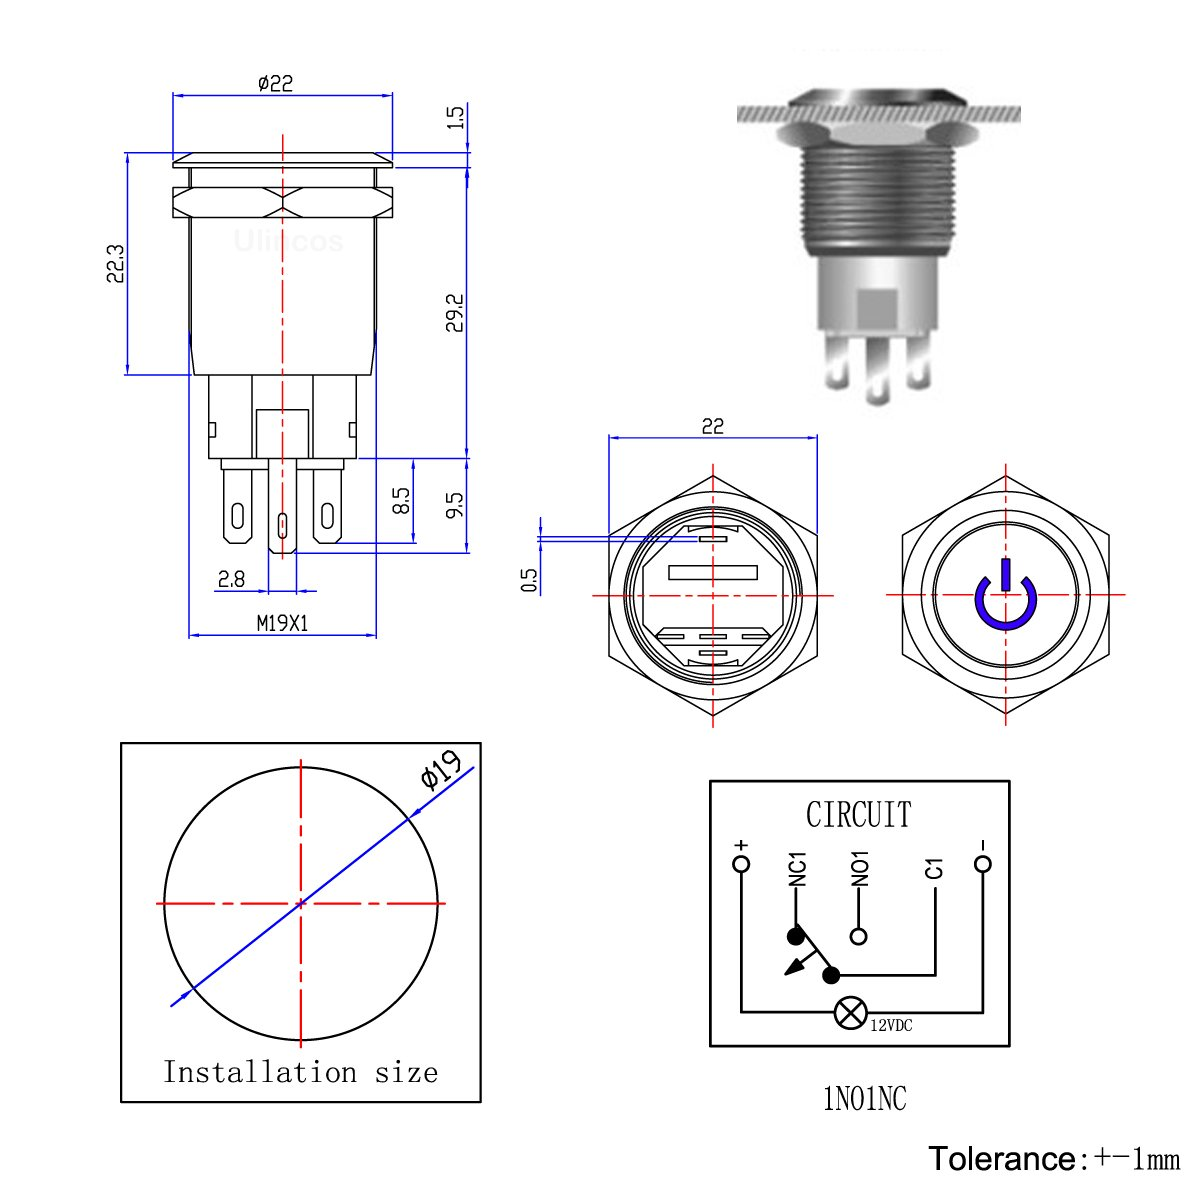 Ulincos Latching Pushbutton Switch U19c1 1no1nc Spdt On Latch Logic Diagram Including Circuit Off Silver Stainless Steel Shell With 12v Red Led Suitable For 19mm 3 4 Mounting Hole